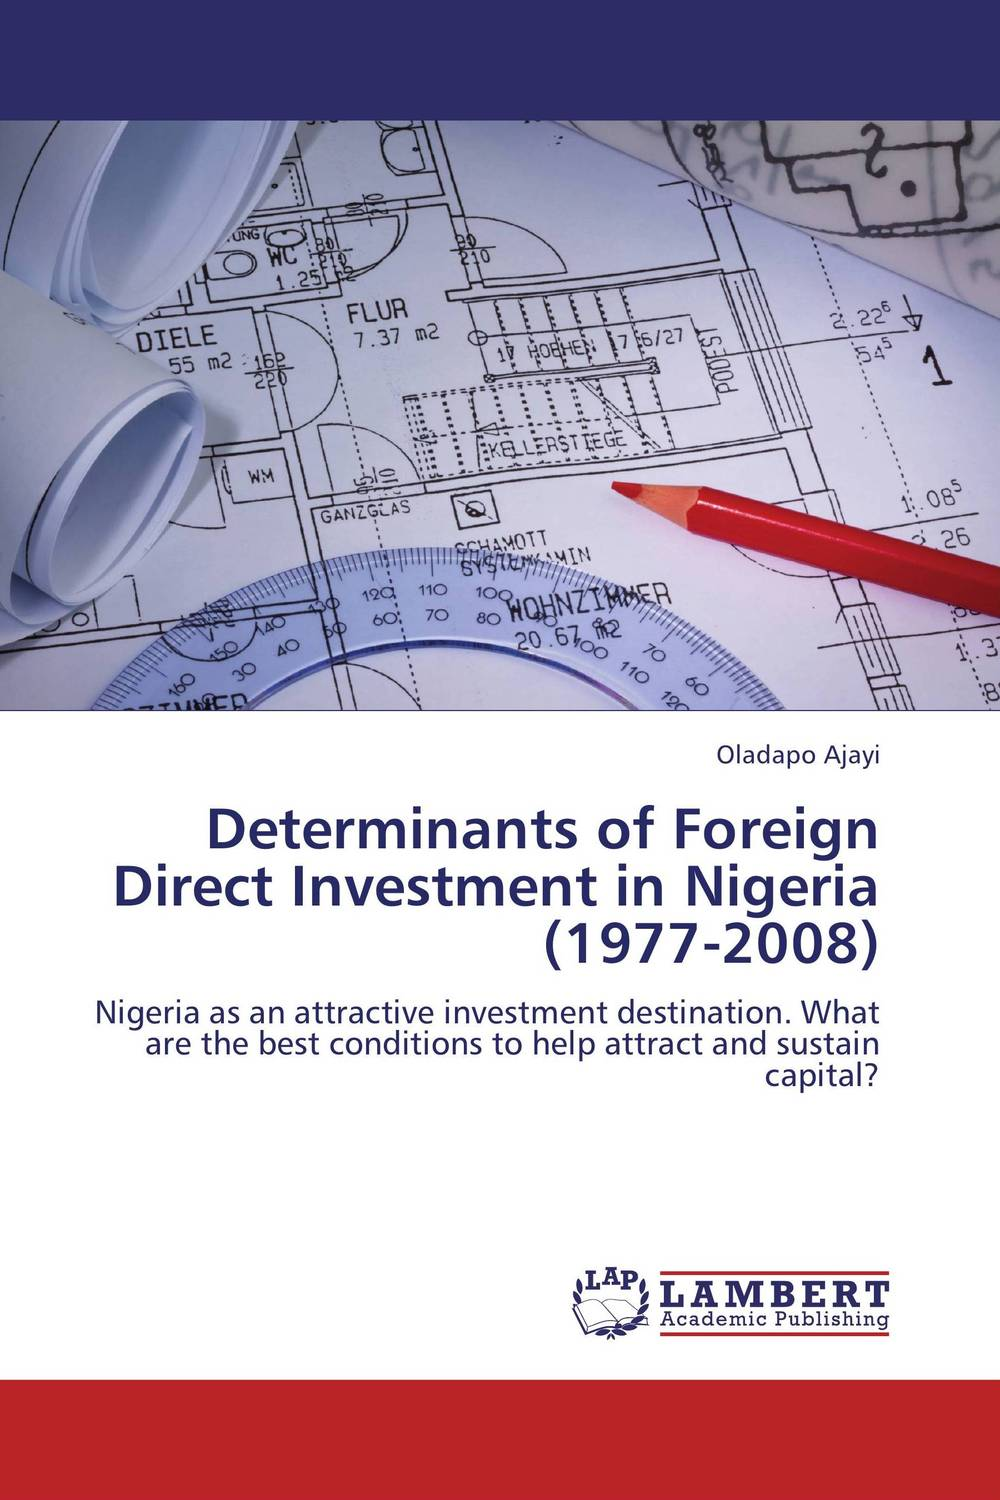 Determinants of Foreign Direct Investment in Nigeria (1977-2008) yusuf oladimeji poverty determinants among artisanal fishing households in nigeria